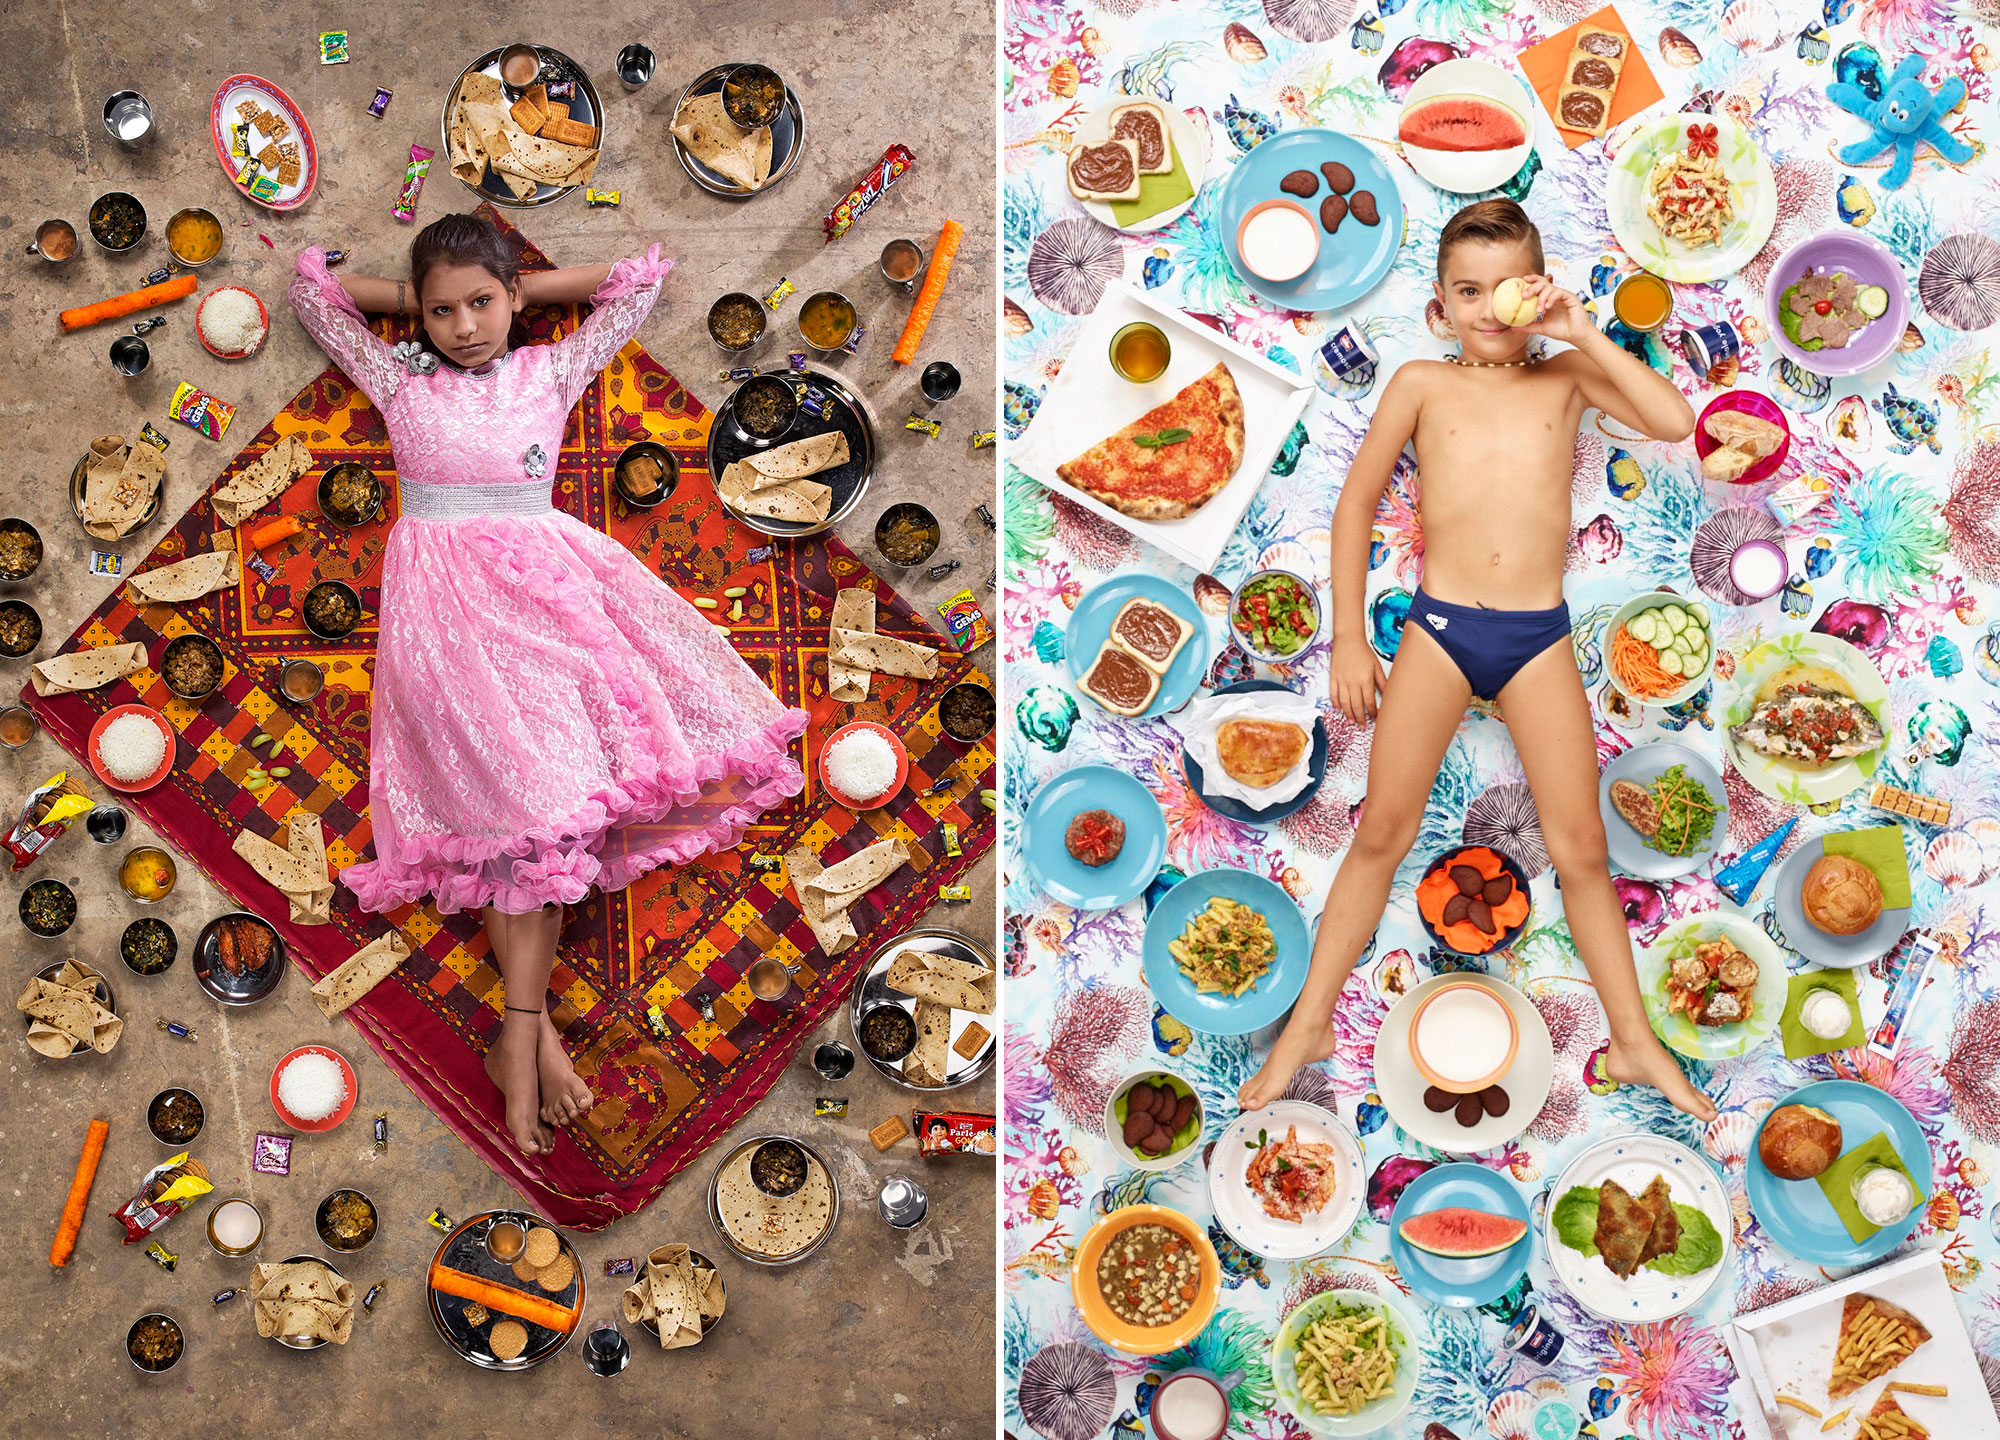 Photographer Gregg Segal traveled around the world to ask kids what they eat in one week and then photographed them alongside the food.